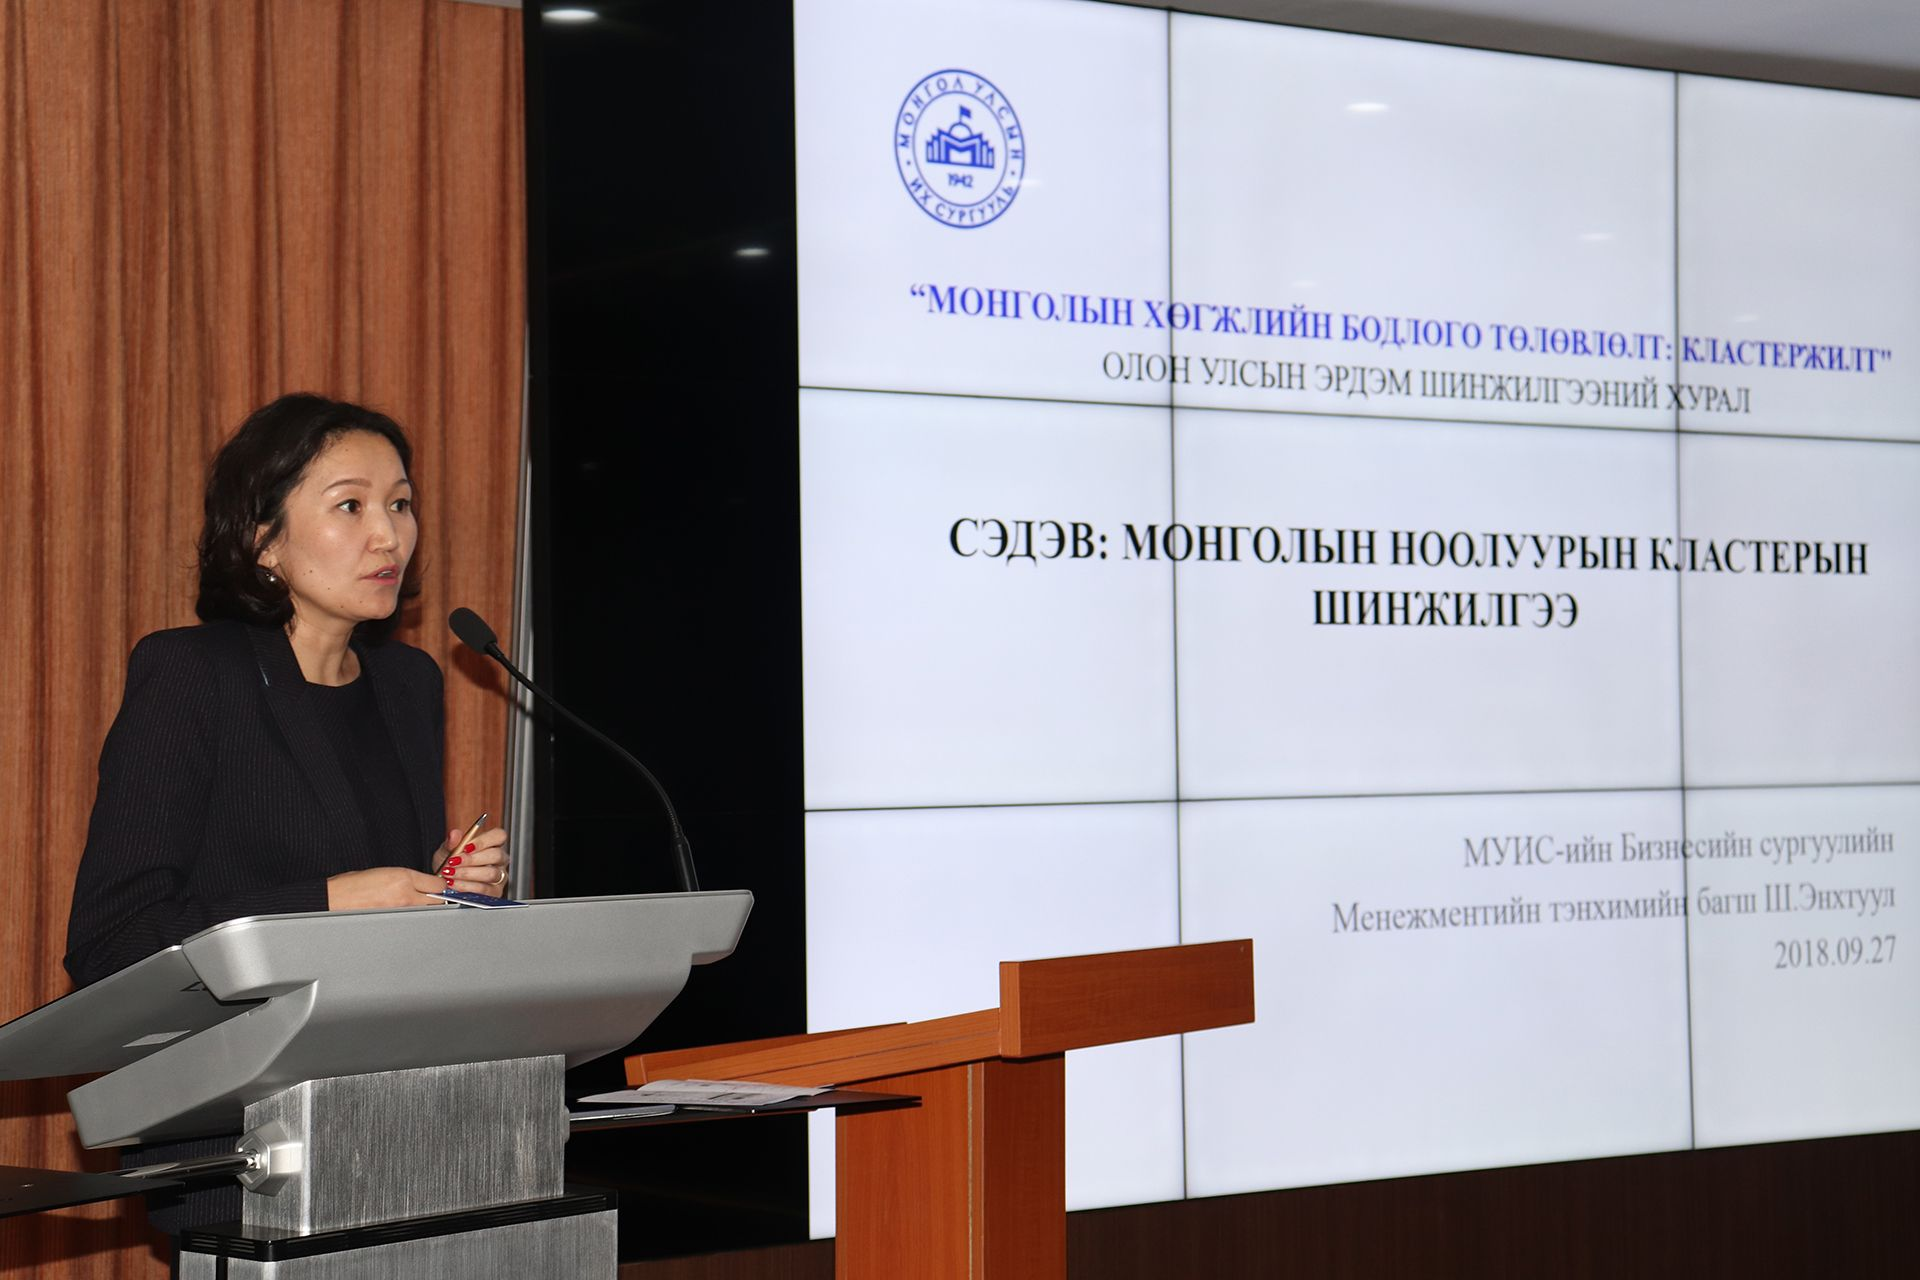 Enkhtuul Sharavdemberel, Lecturer, Business School, National University of Mongolia